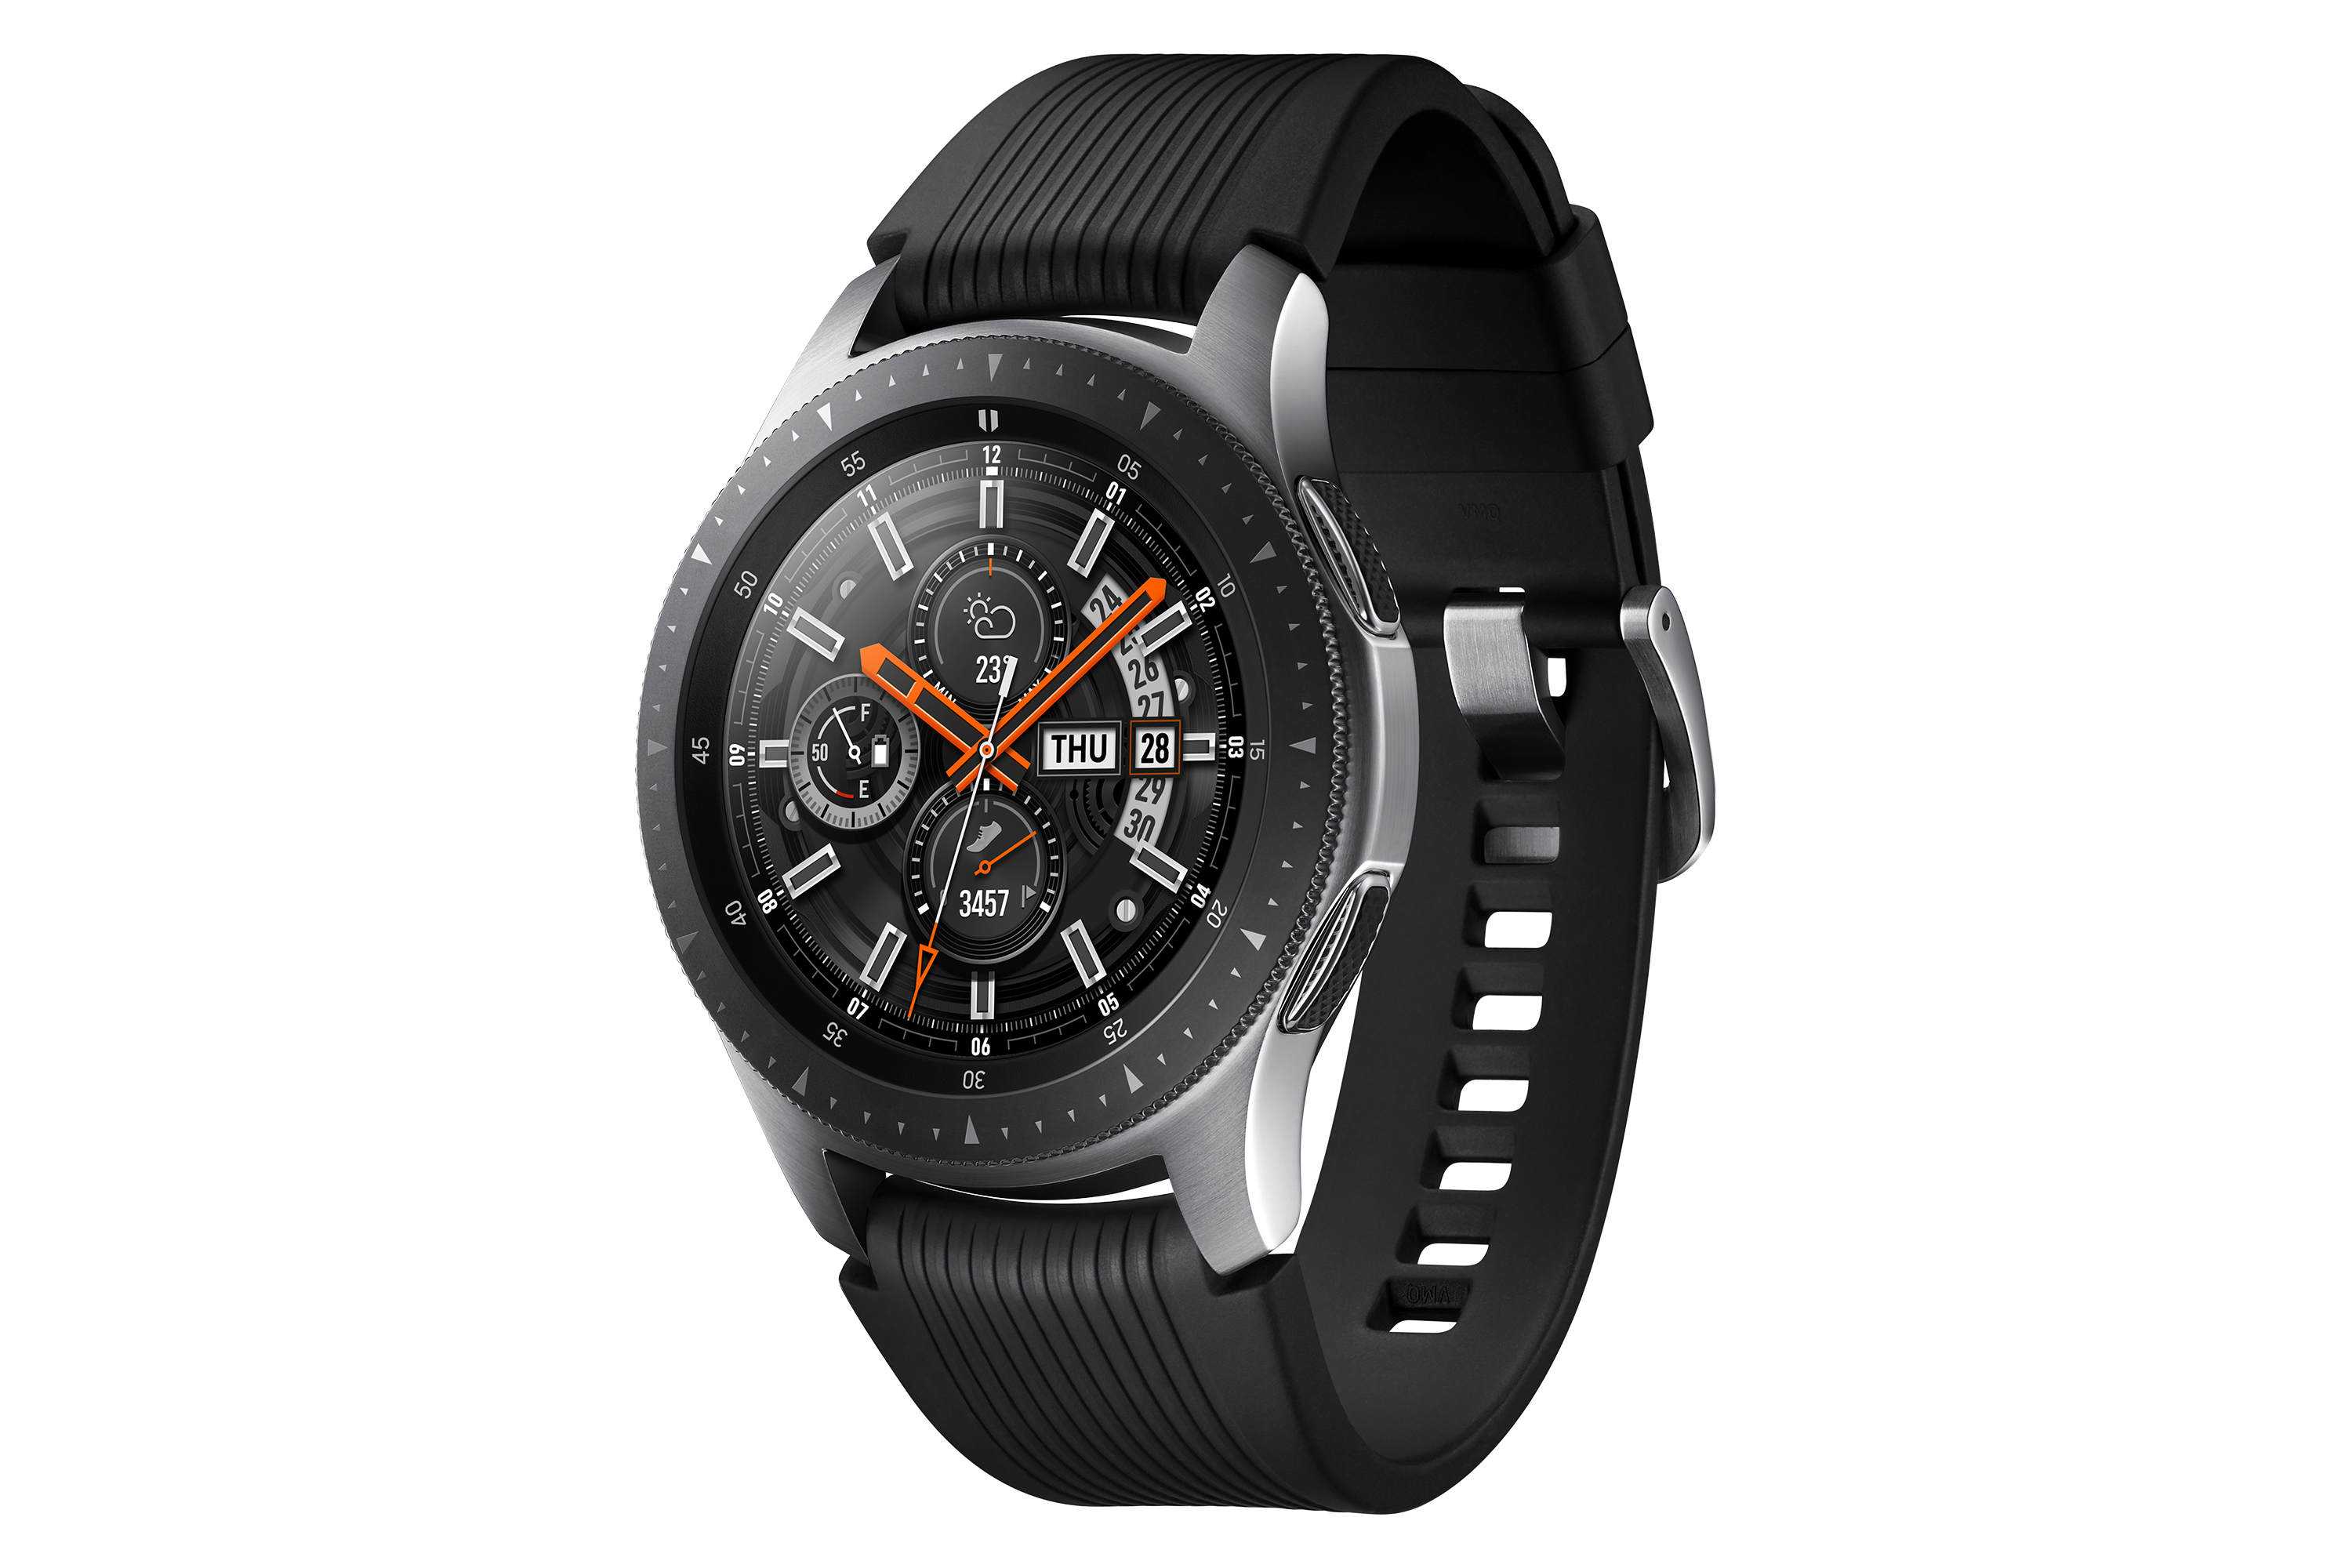 Open-box Galaxy Watch available in 42mm flavor for $180, 46mm for $190